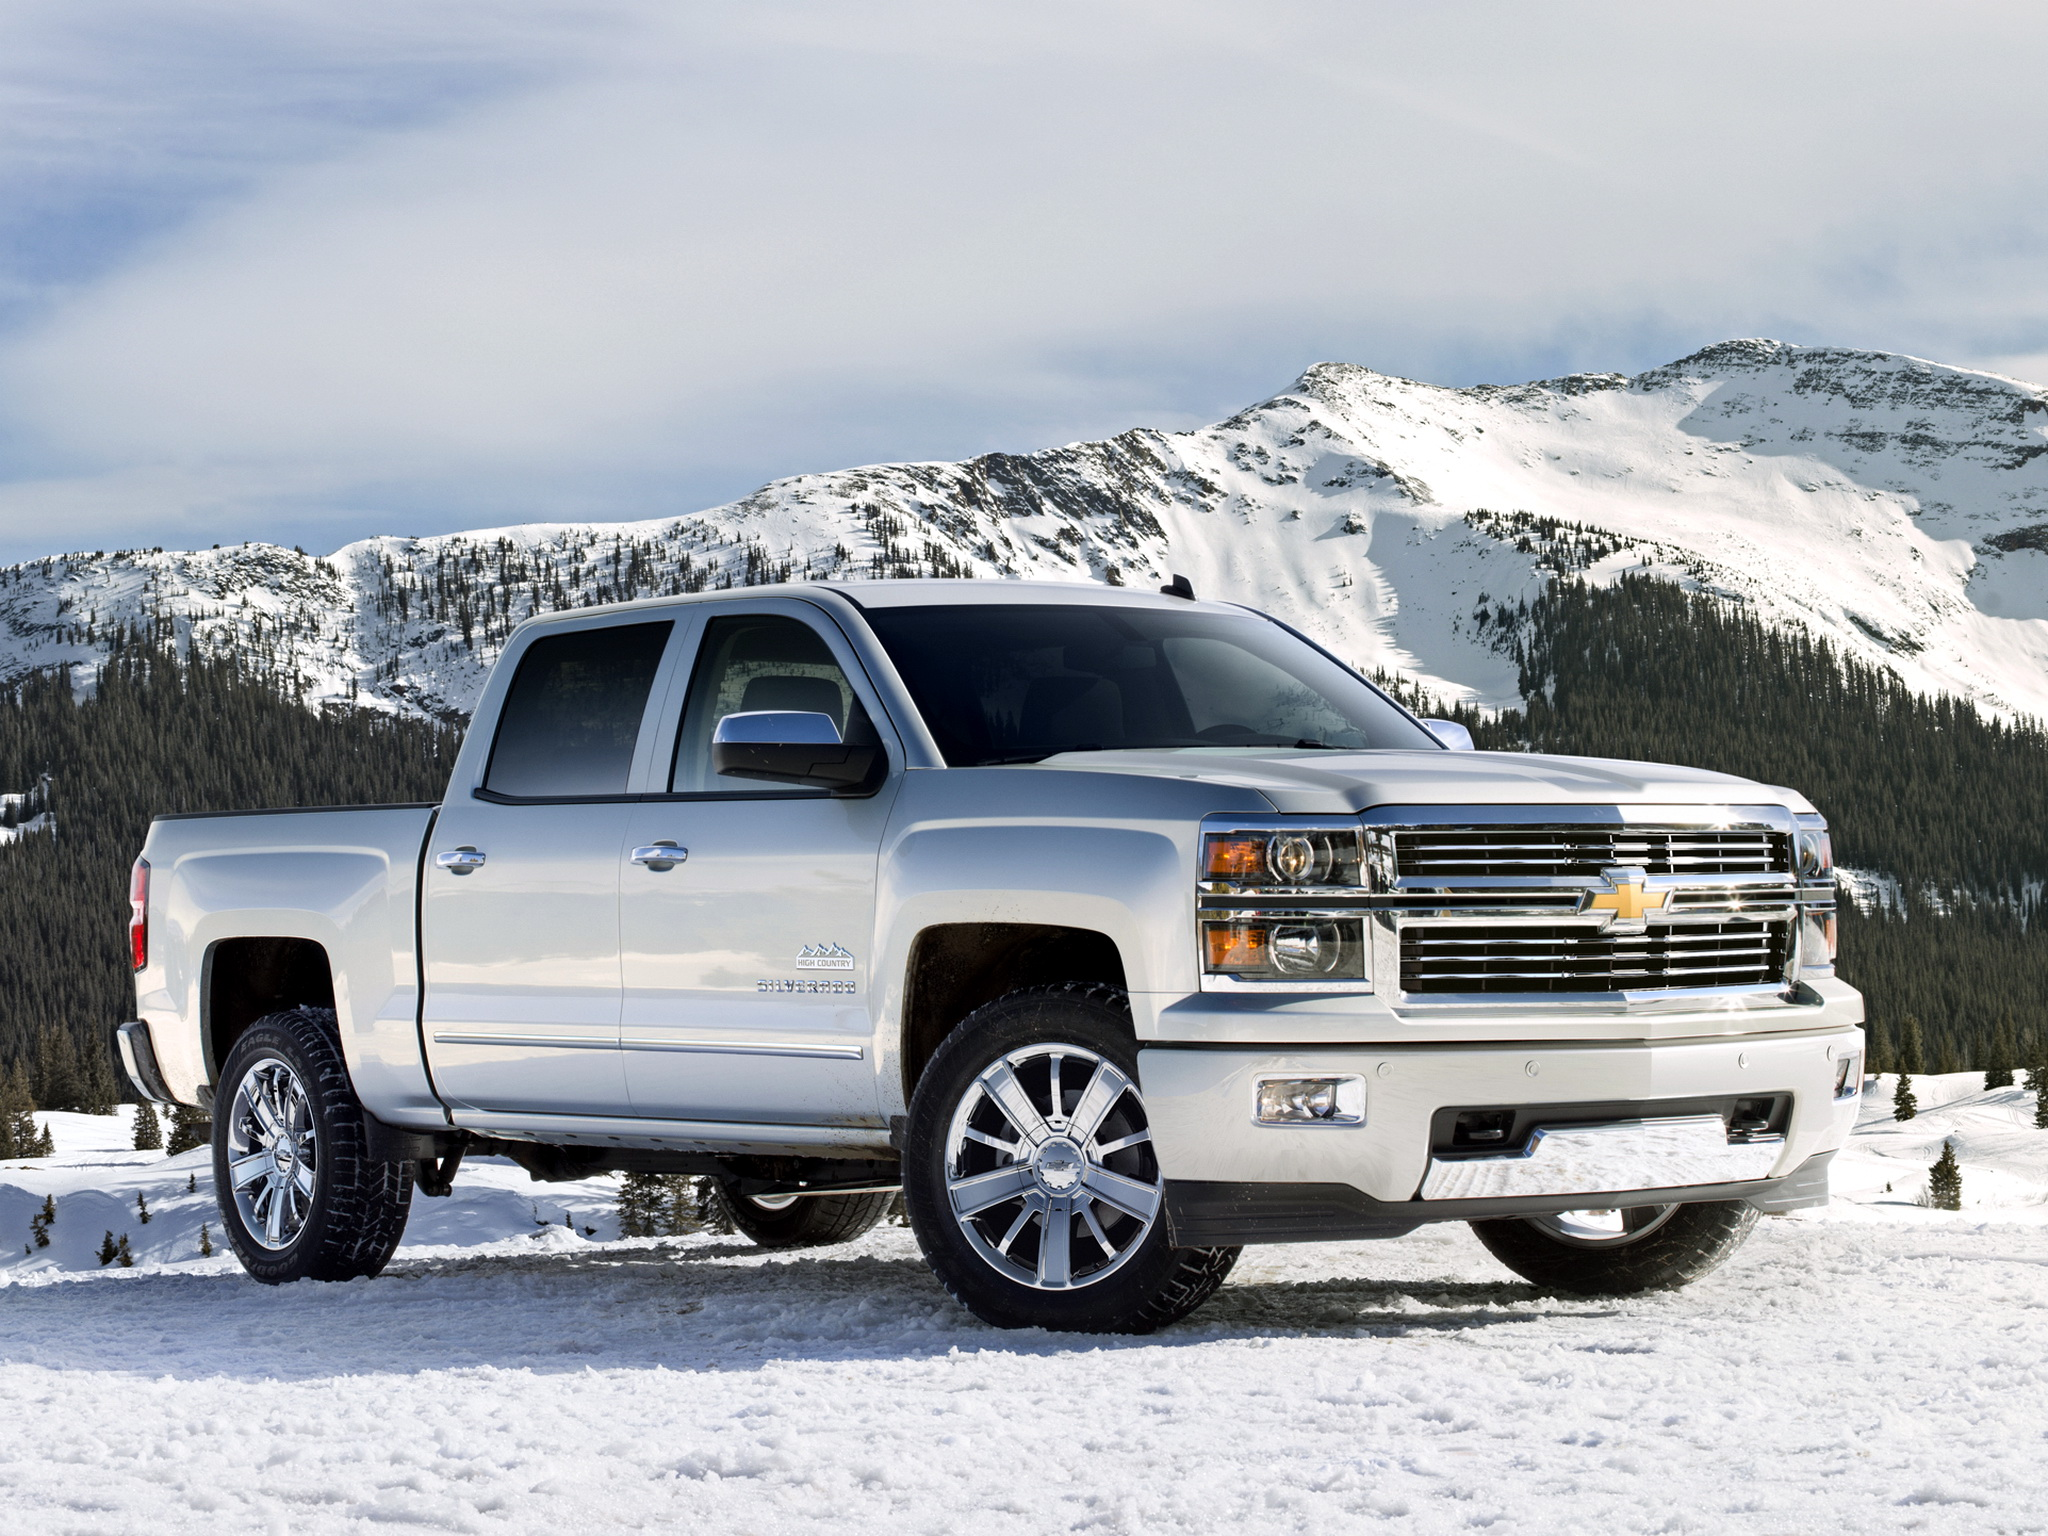 Reaper Silverado >> 3 2013 Chevrolet Silverado High Country Crew Cab HD Wallpapers | Backgrounds - Wallpaper Abyss